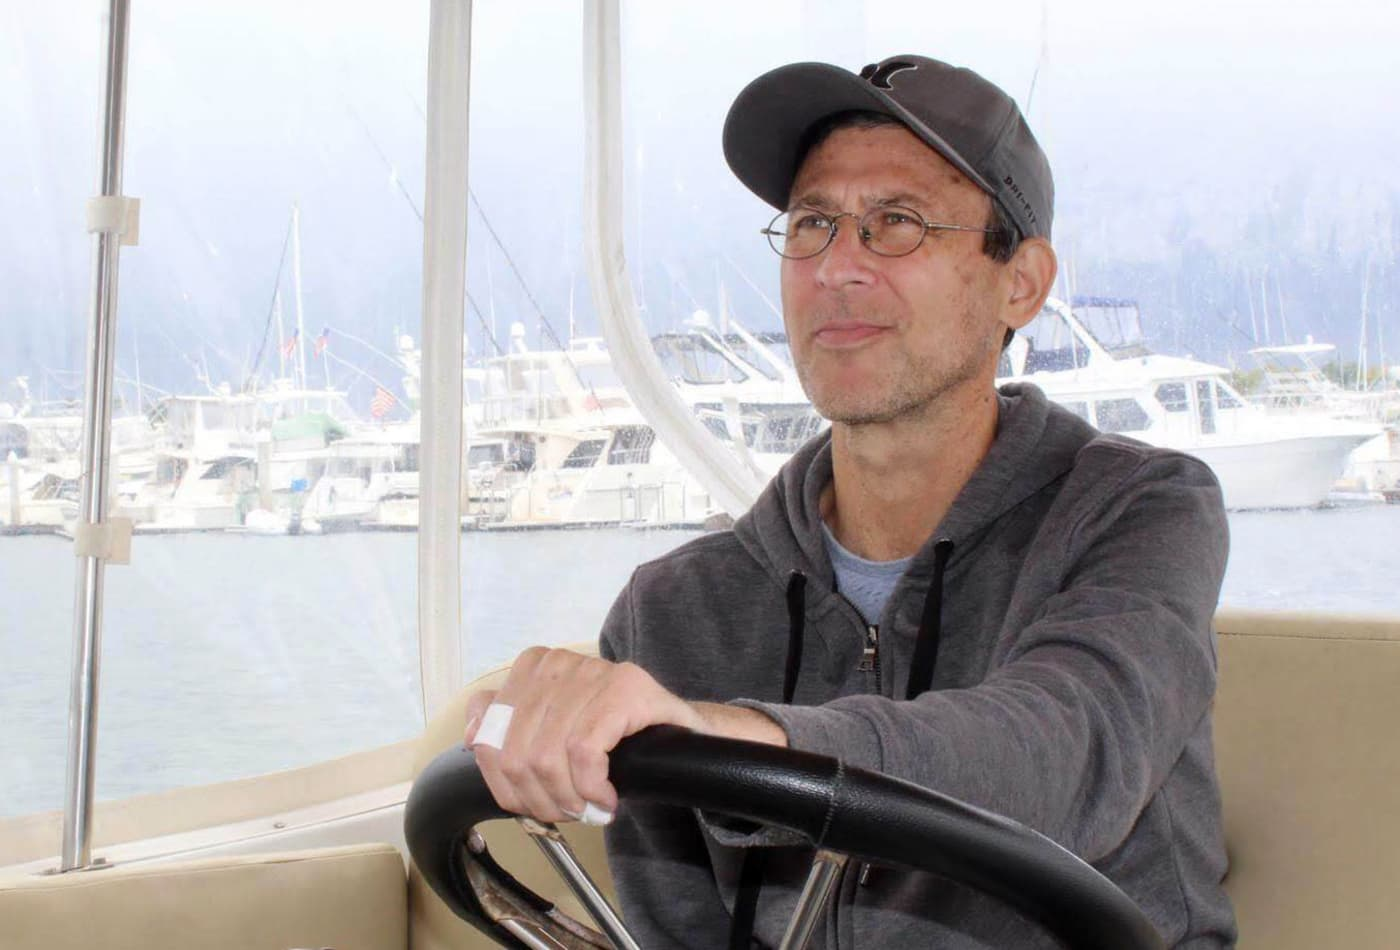 Michael Seres, an influential patient who hacked together a 'smart' ostomy bag, dies at 51